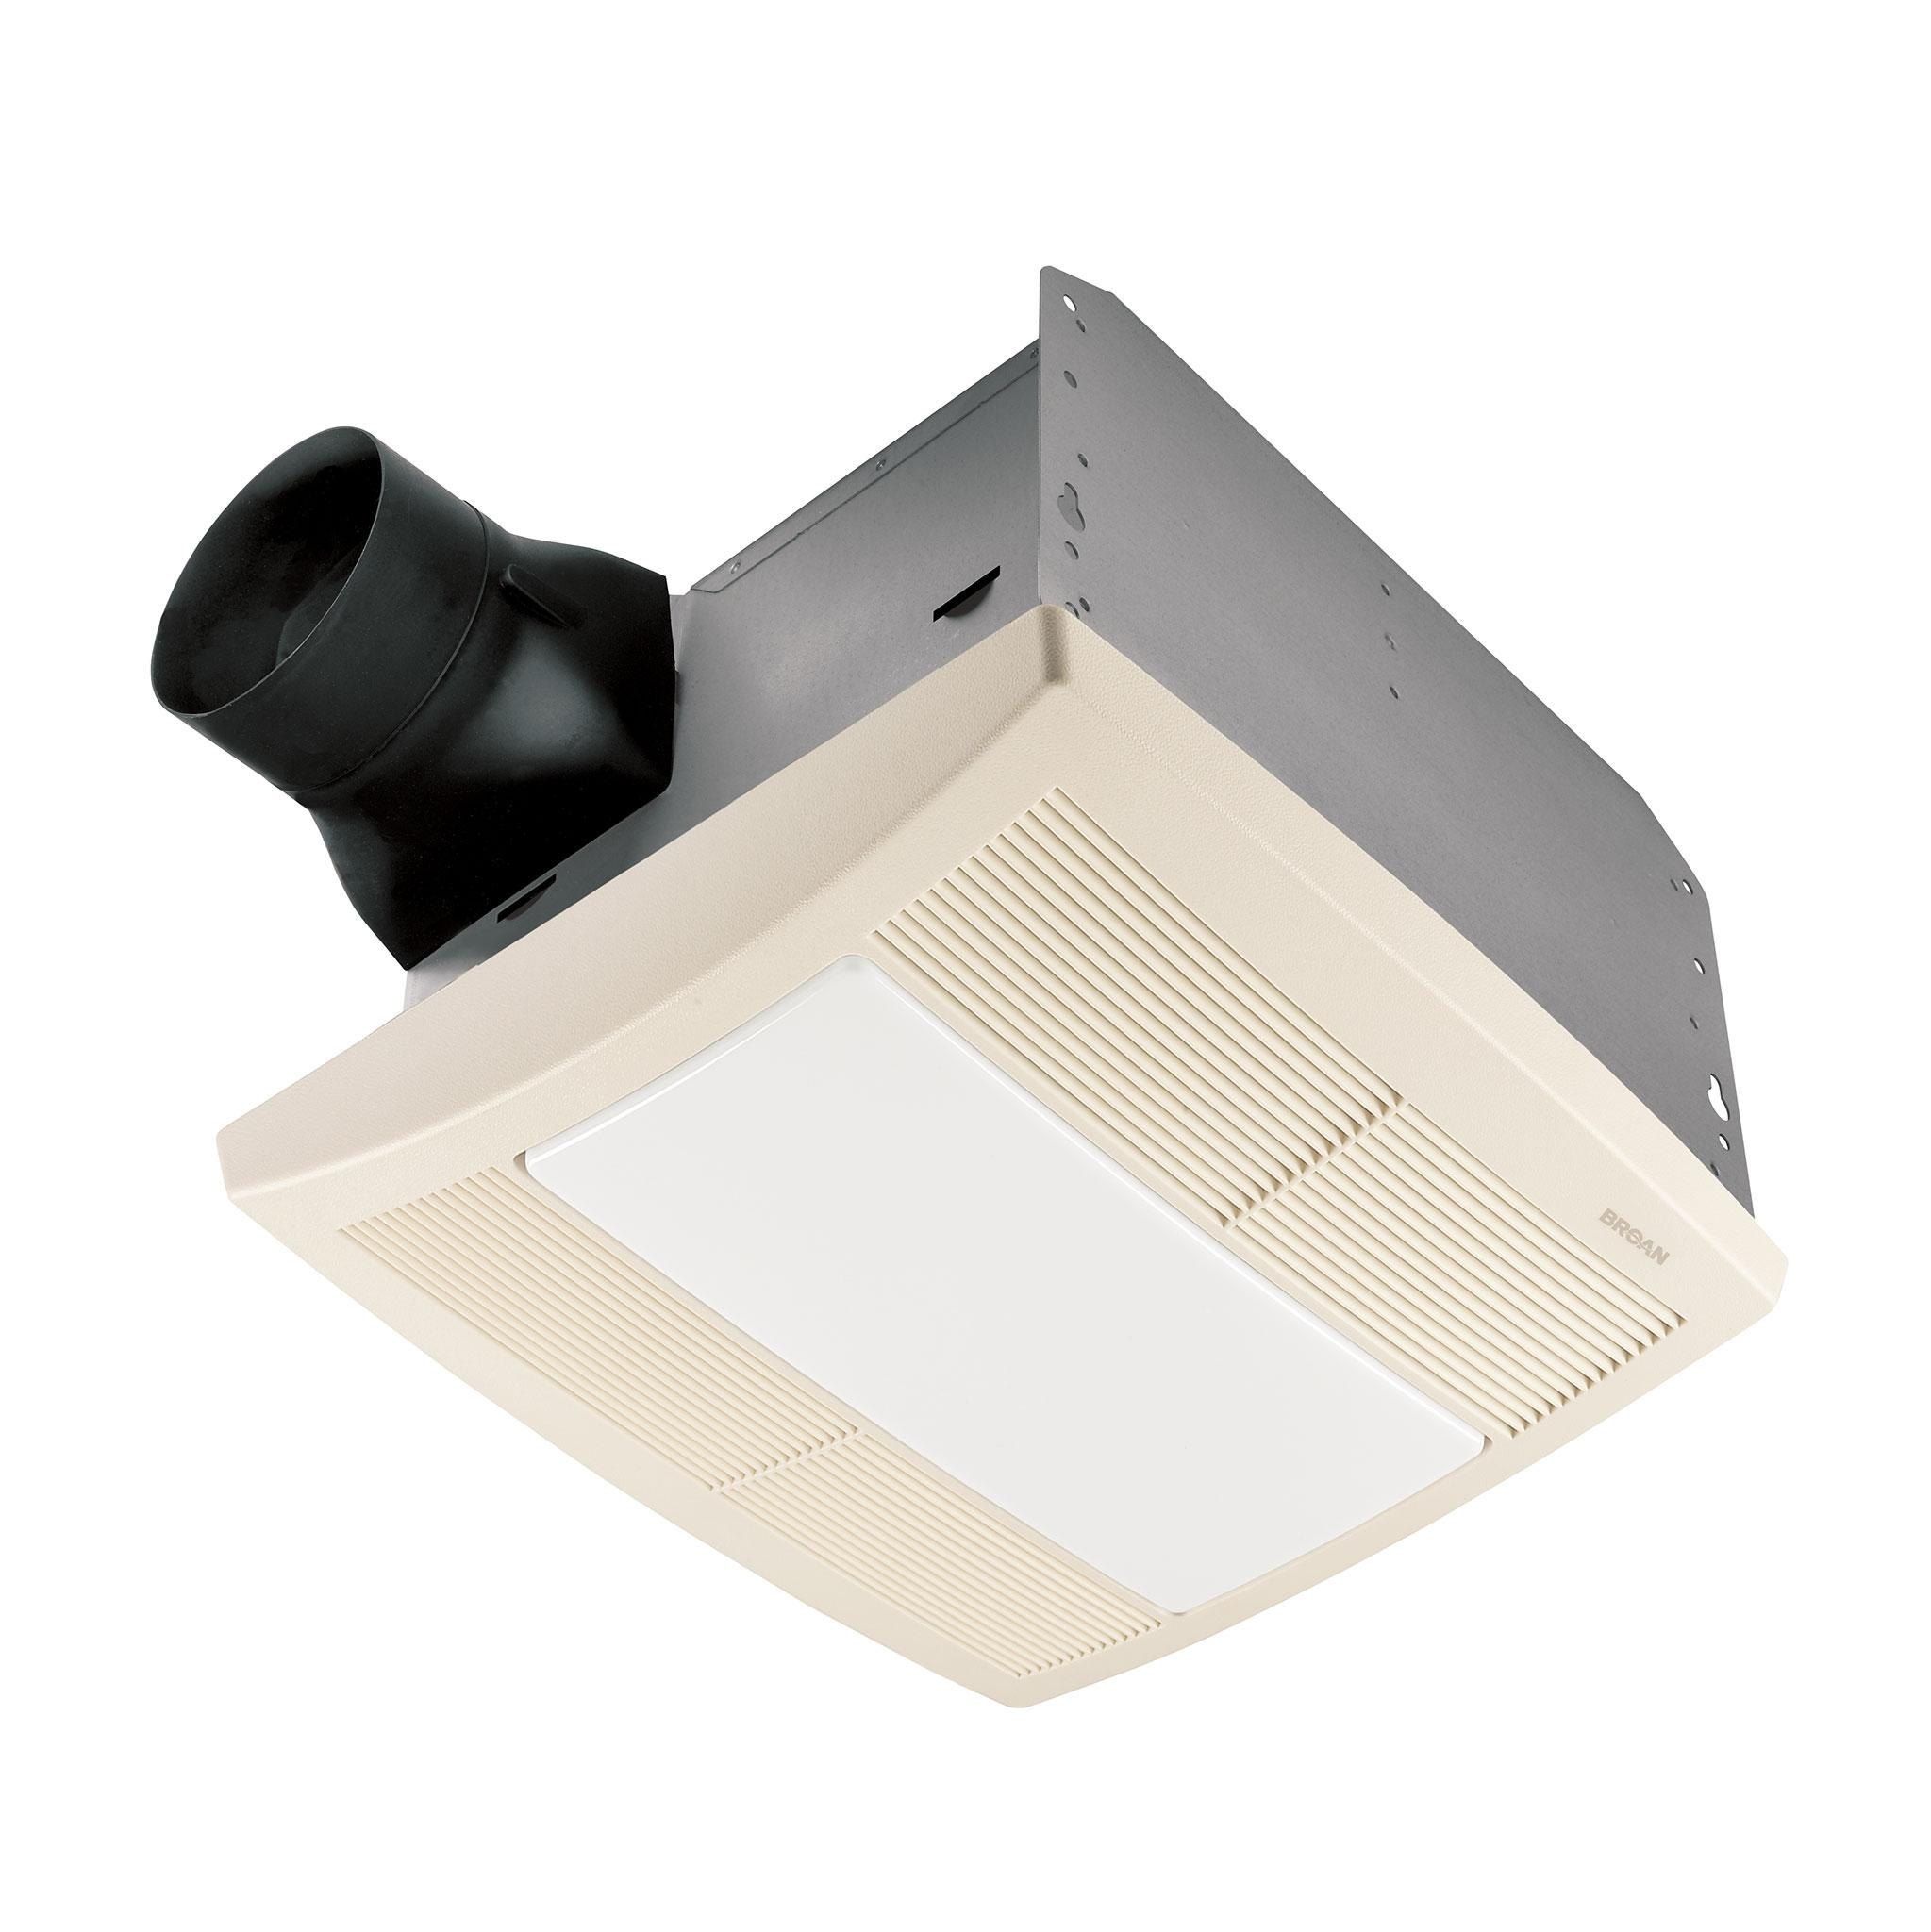 Broan QTR080L Ventilation Fan And Light